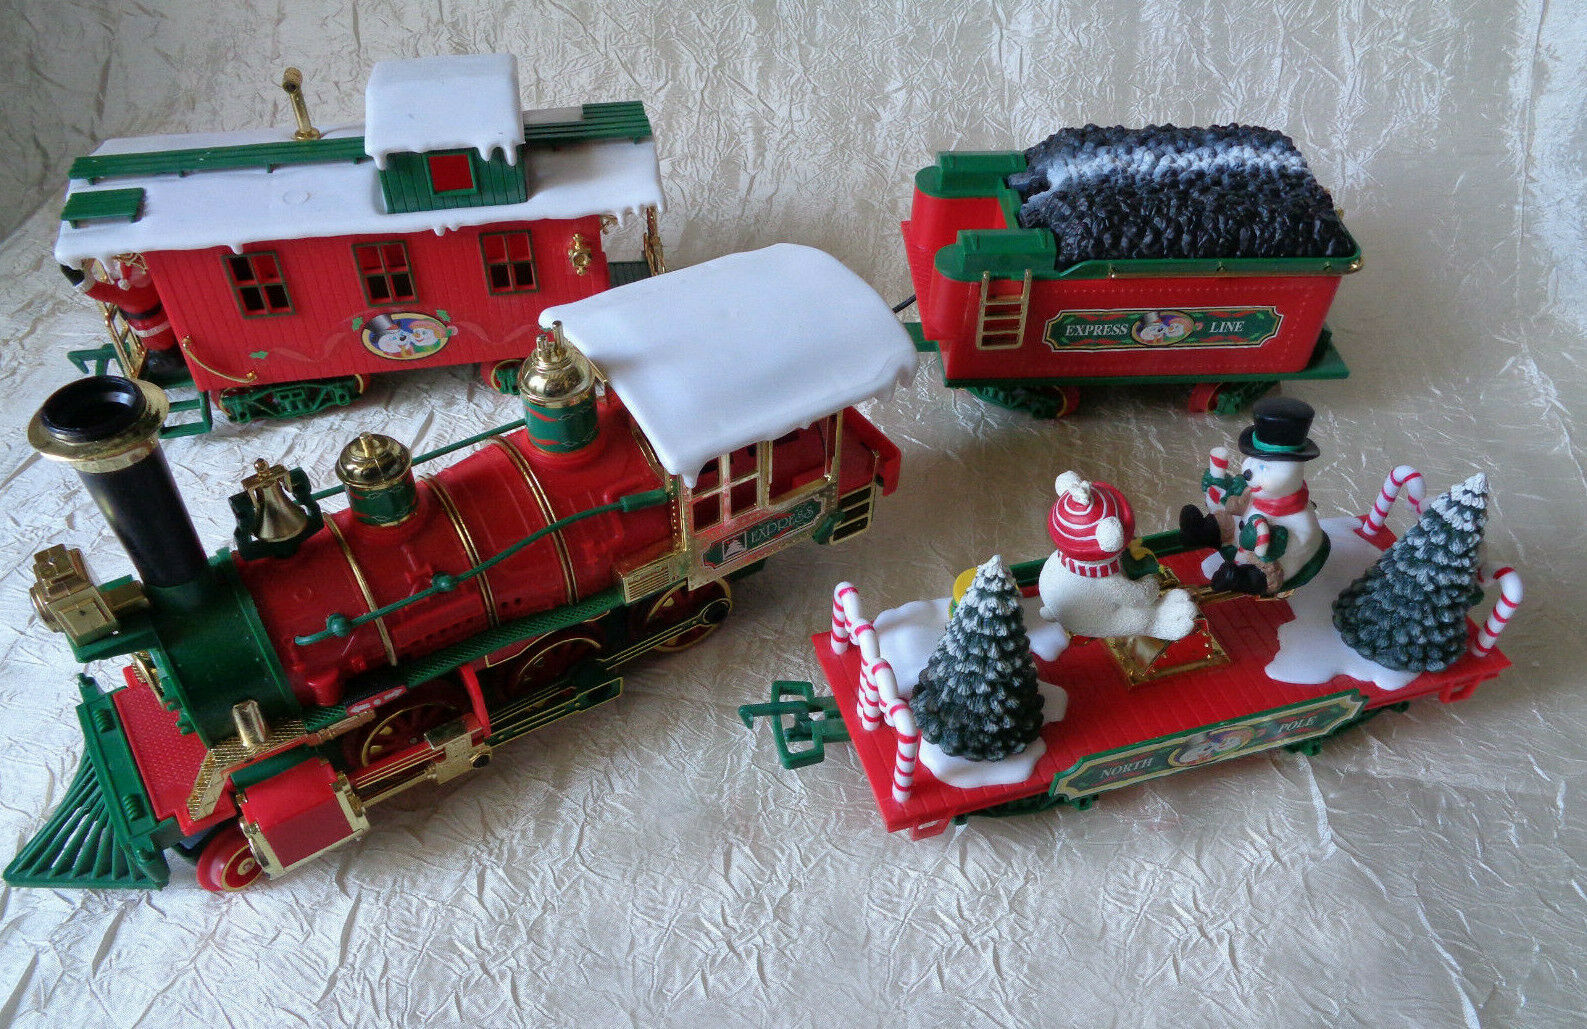 North Pole Vintage Christmas Express Line Musical G Scale Train Set  18' Track